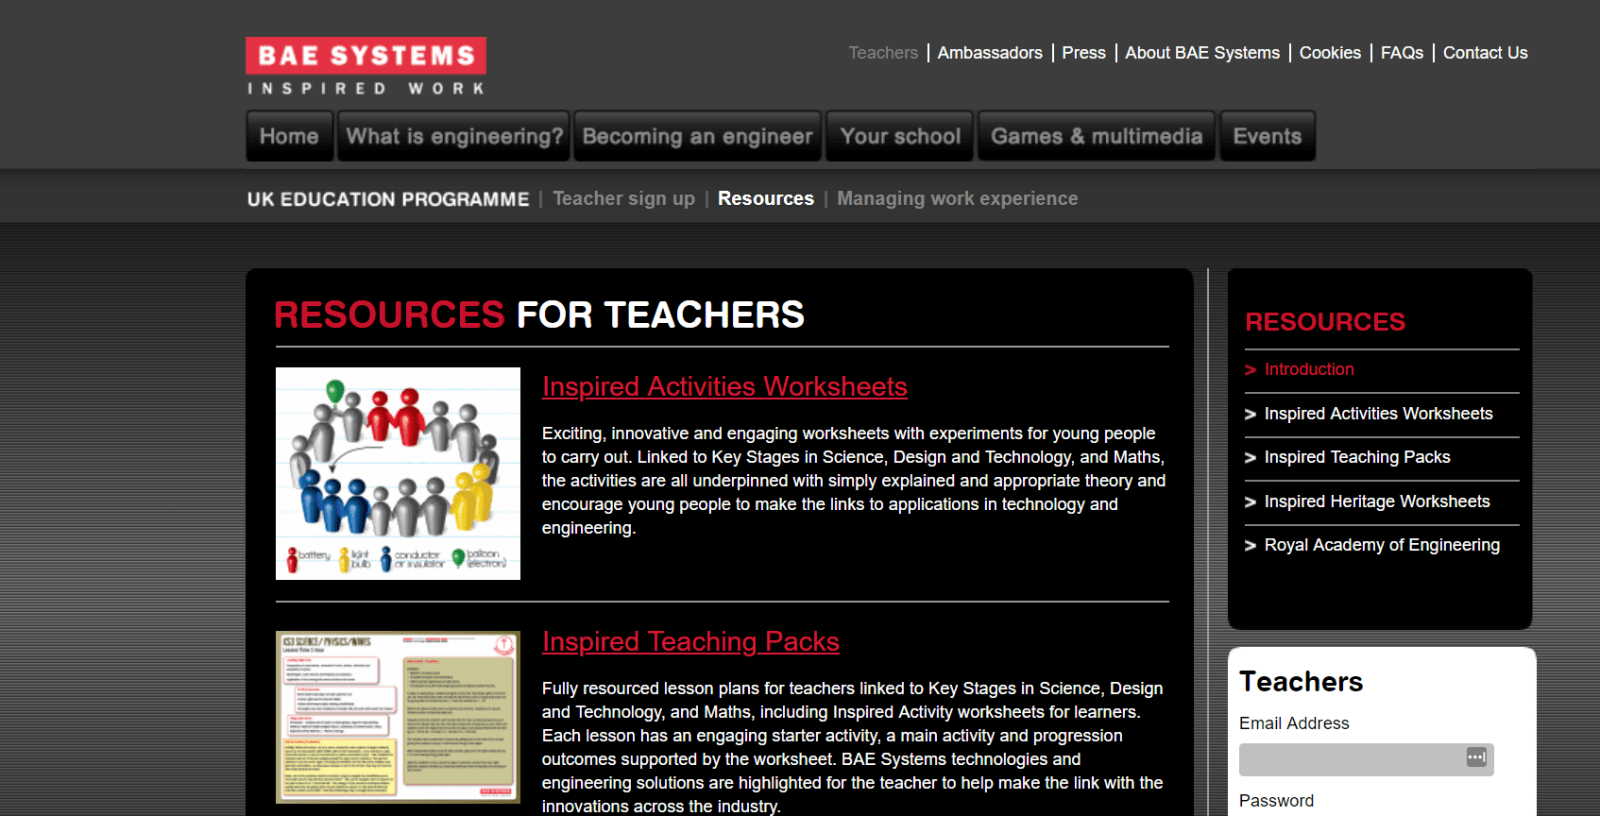 Screen grab from BAE website showing resources for schools